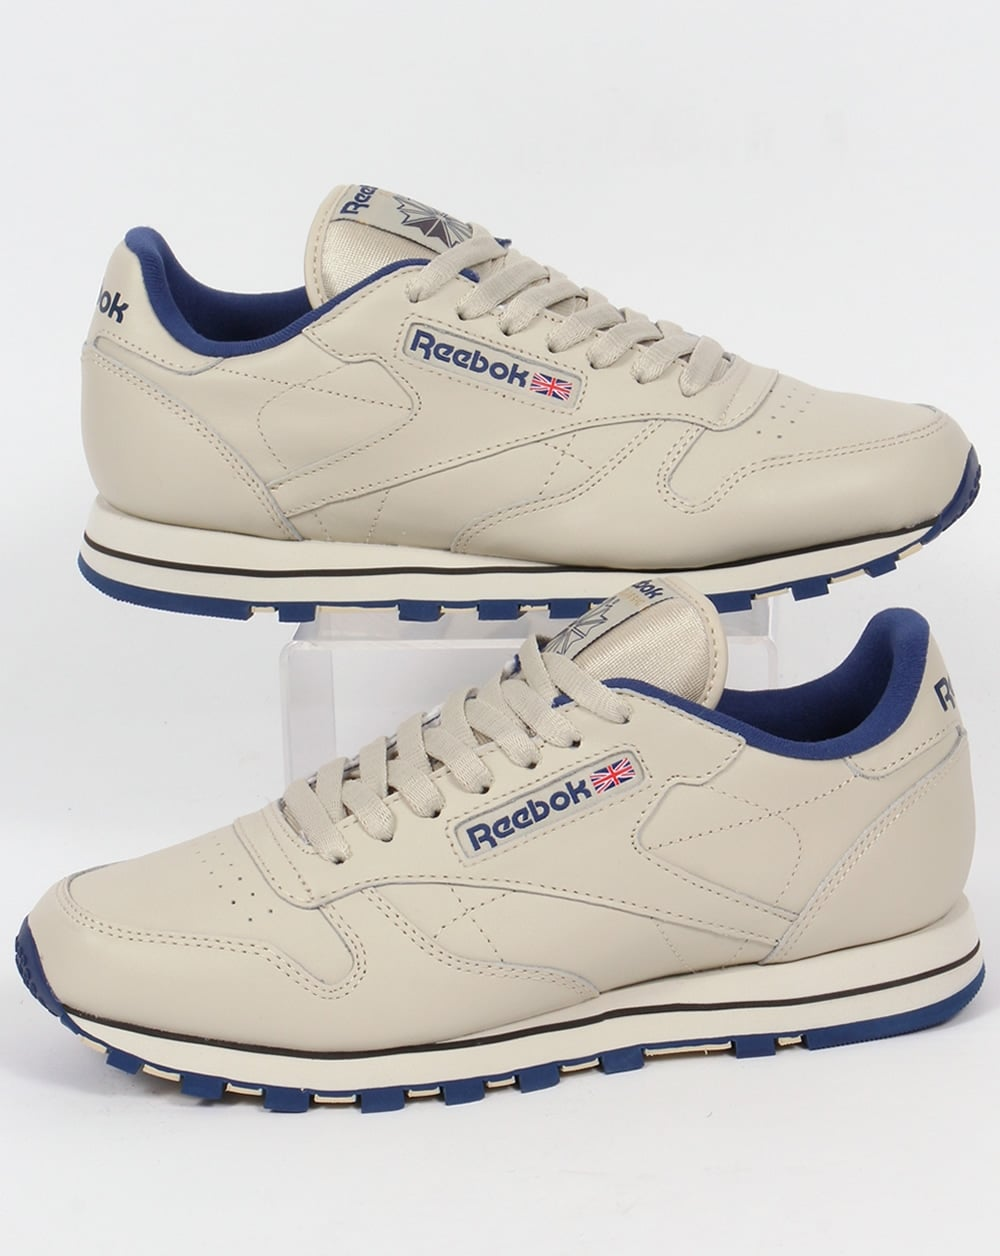 Reebok Classic Leather Trainers Ecru/Navy,shoes,utility,mens - photo#31